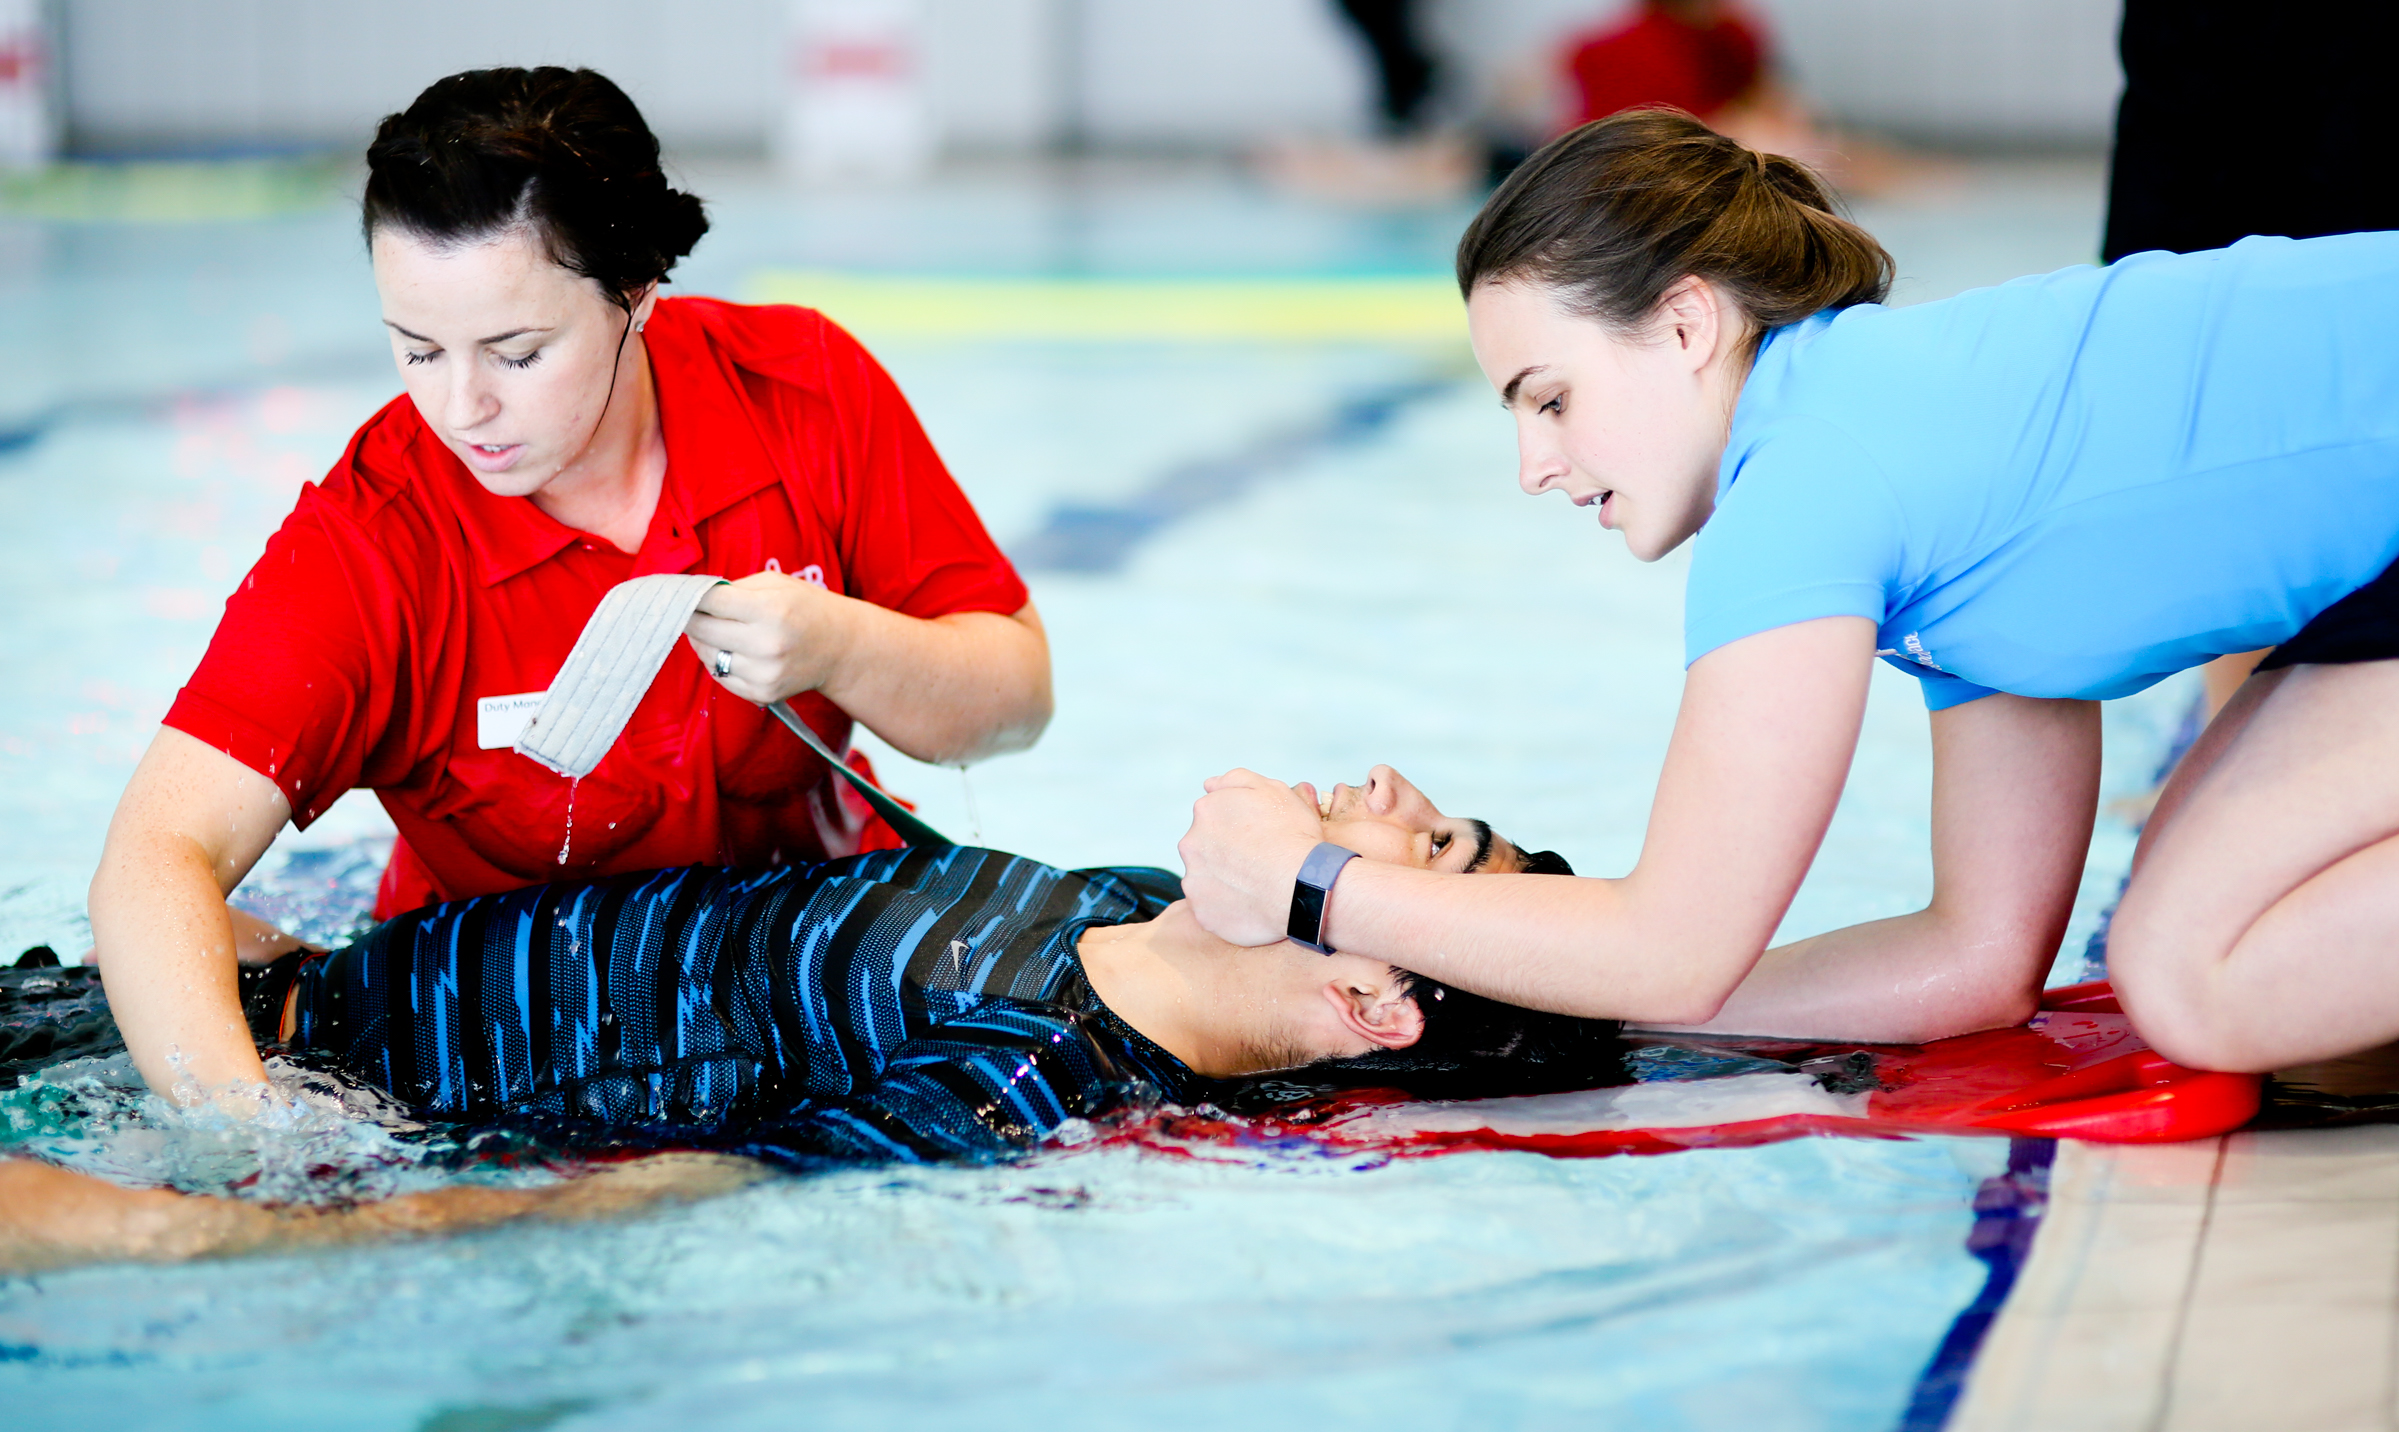 Lifeguards from different leisure centres across Northern Ireland take part in the annual GLL Top Team competition at Olympia Leisure Centre in Belfast.